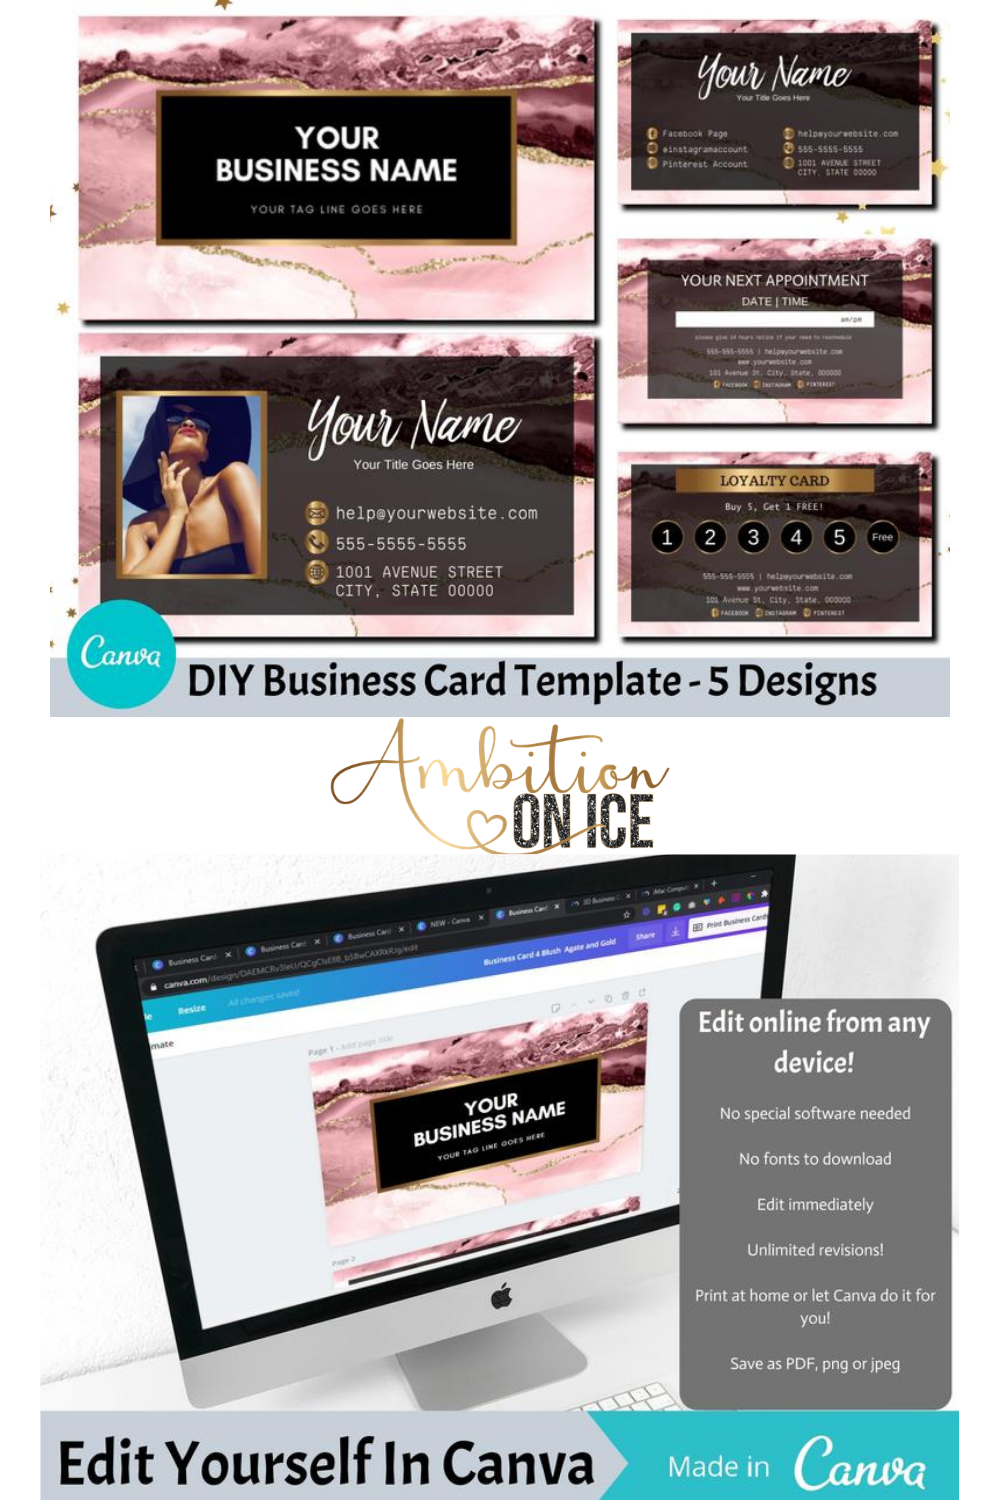 Blush Agate Business Cards Canva Template Gold Glitter Business Card Design Appointment Card And Loyalty Card Instant Download Blagg Glitter Business Cards Business Card Design Business Cards Diy Templates